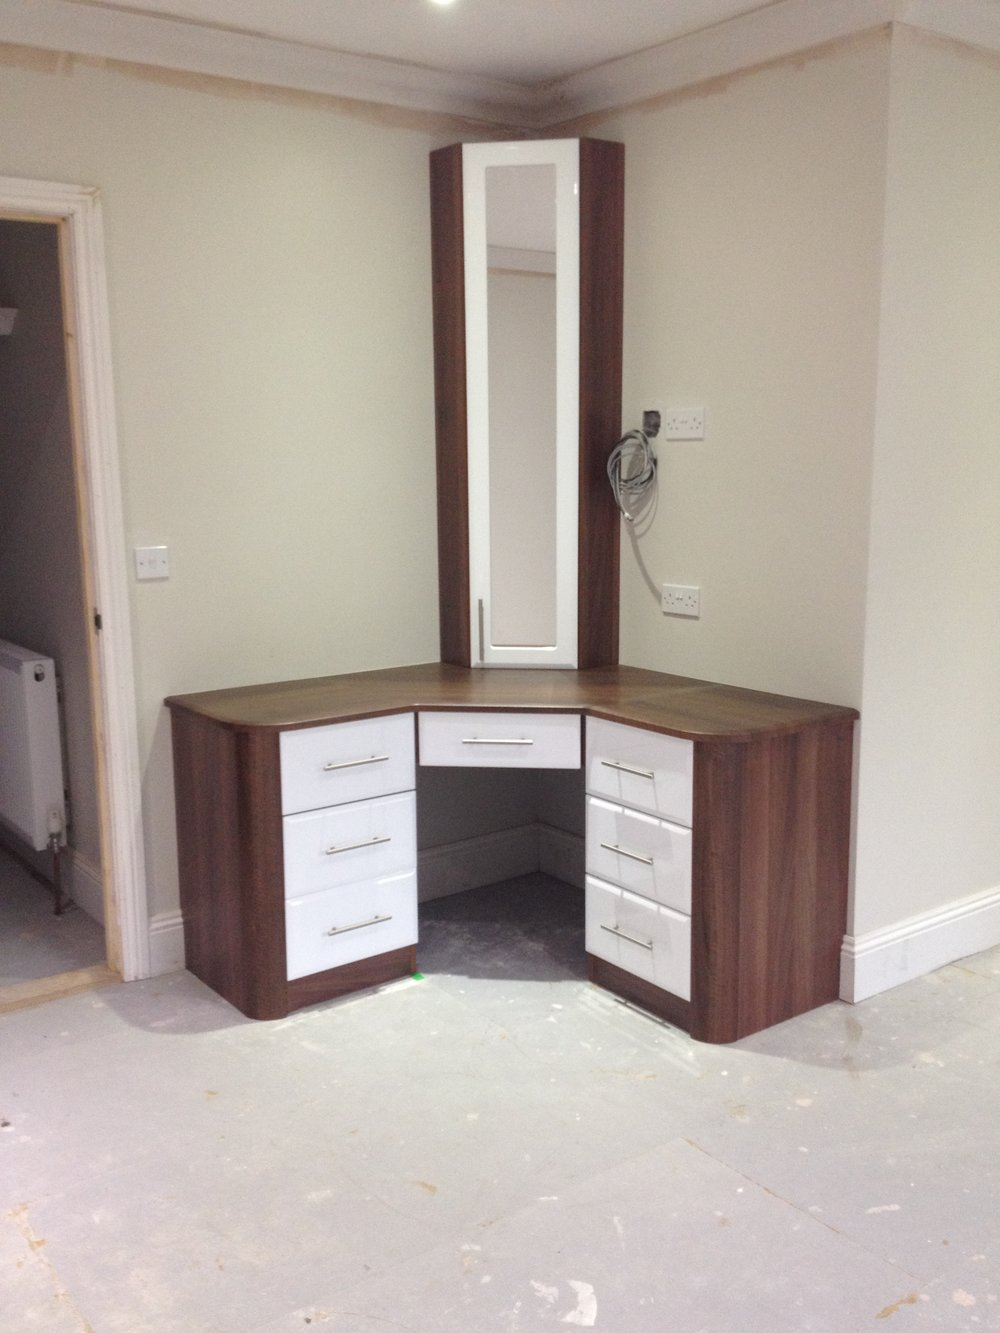 Warsash - A teen's dressing table and homework space in a very tight corner. Note the rounded end panels and corner mirrored cupboard.